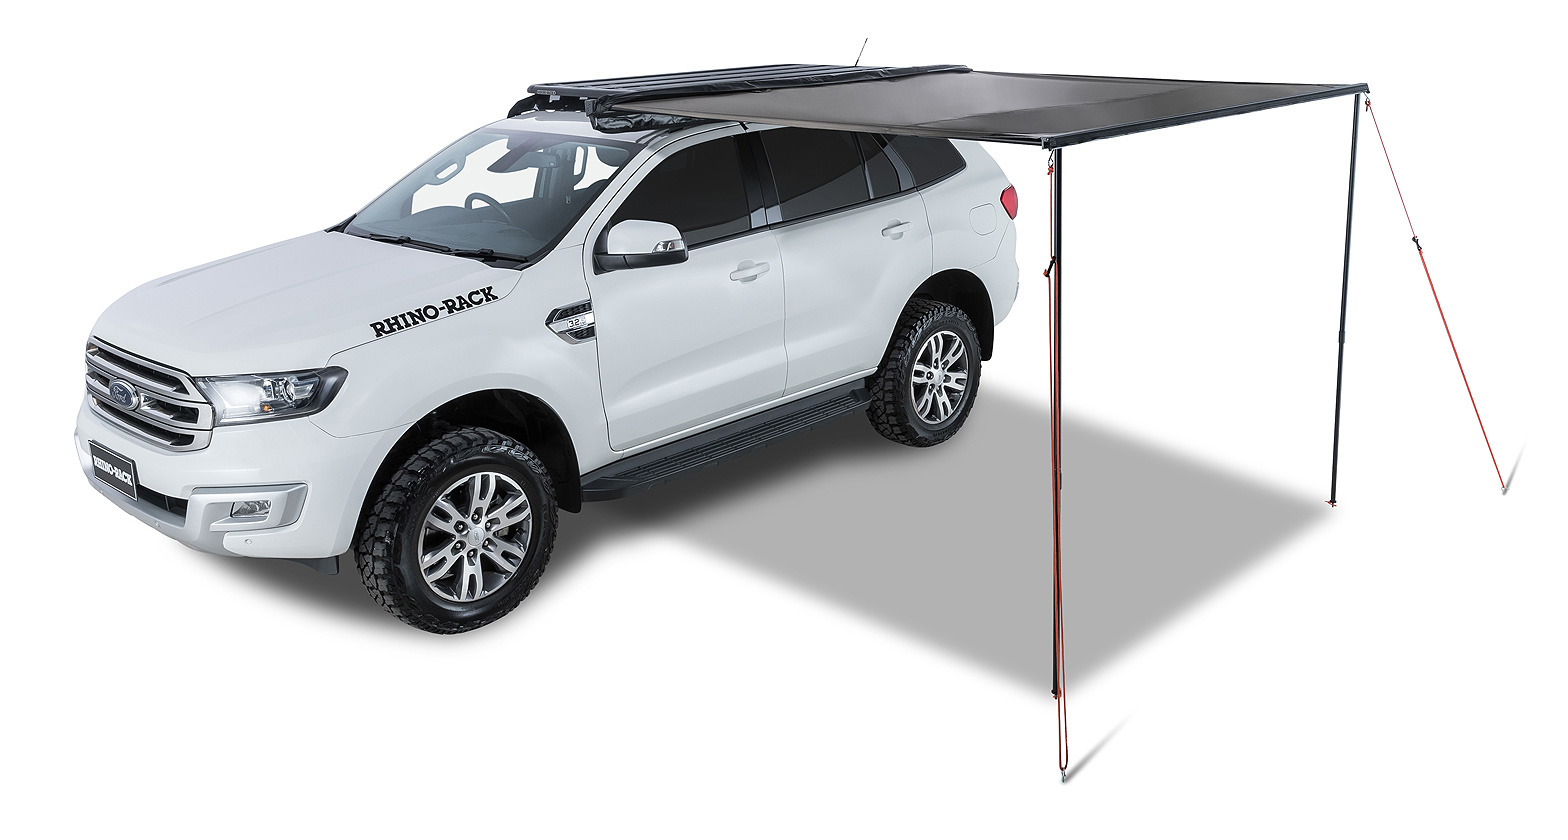 Rhino-Rack Sunseeker 8.2ft Awning